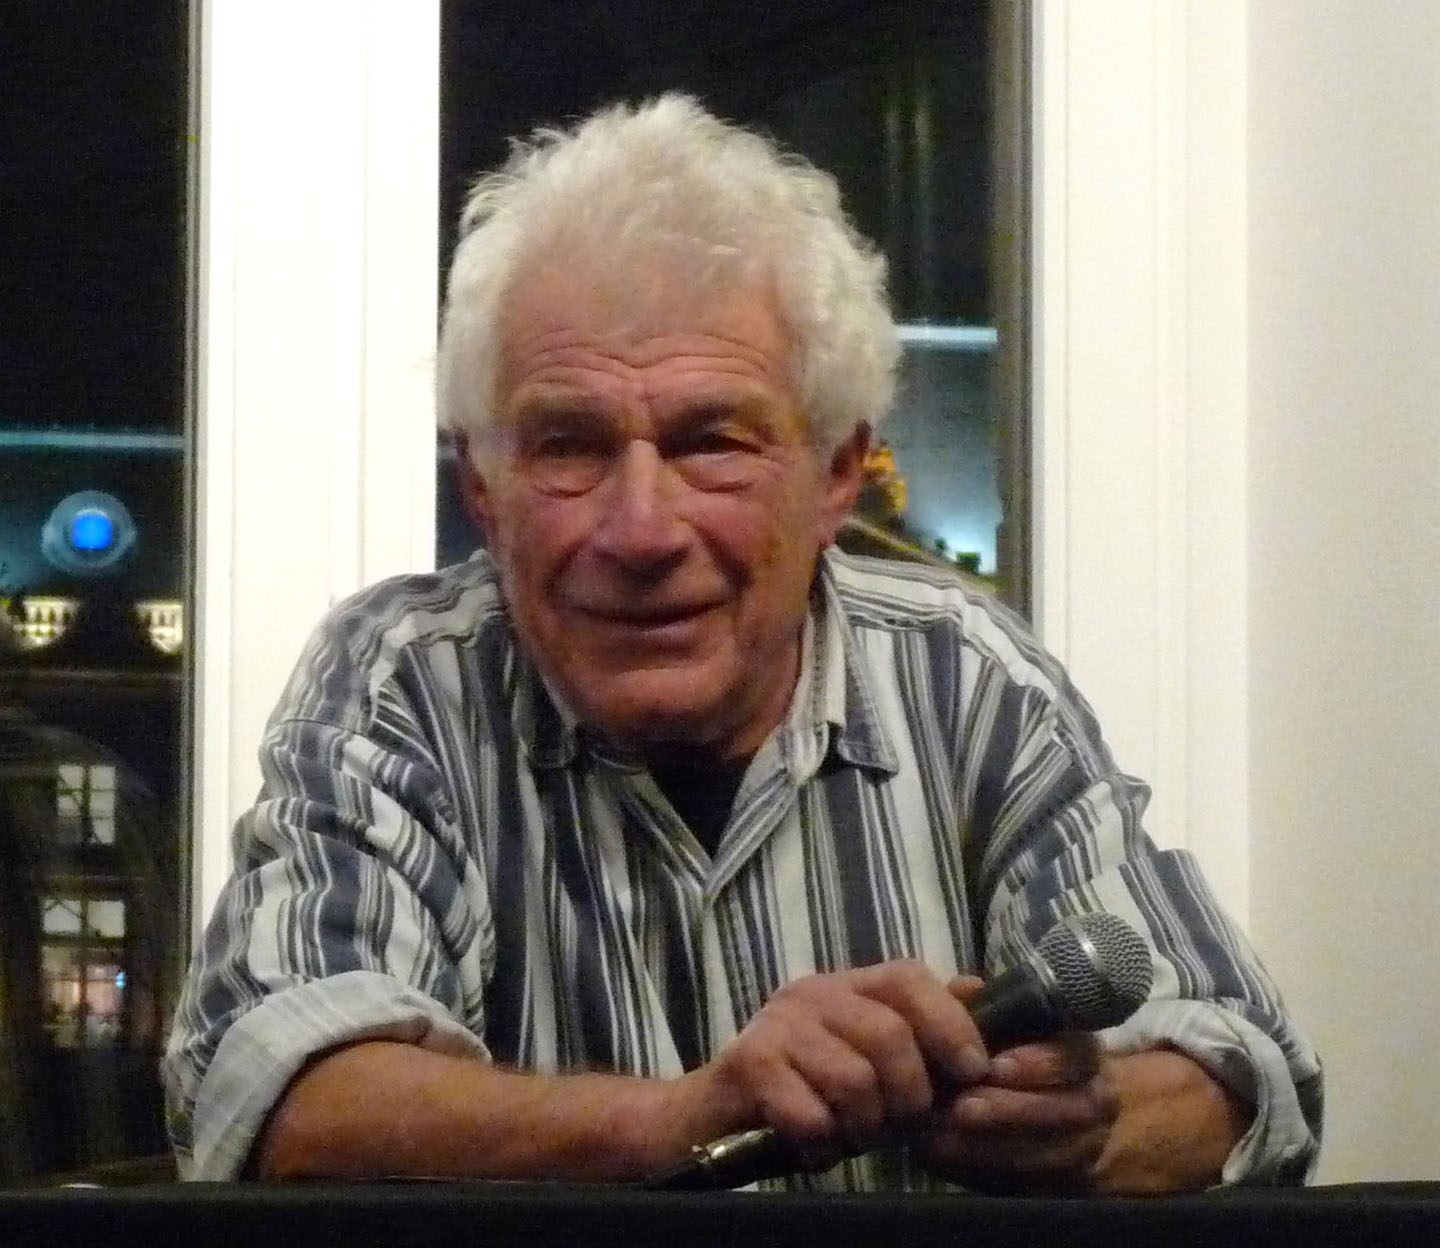 John Berger, art critic and author, dies aged 90